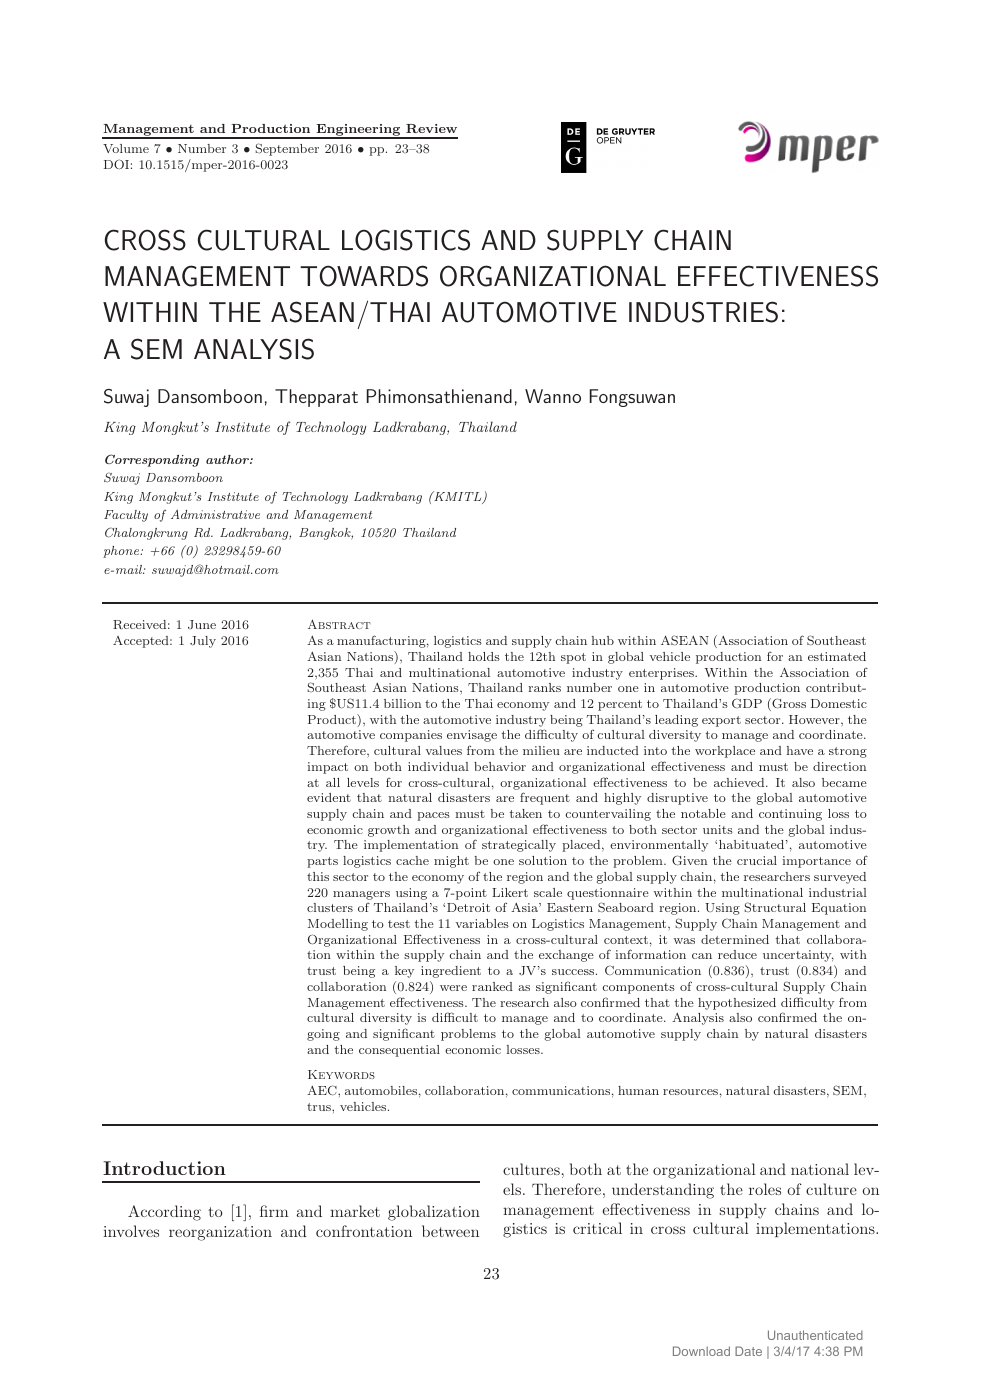 Cross Cultural Logistics and Supply Chain Management Towards